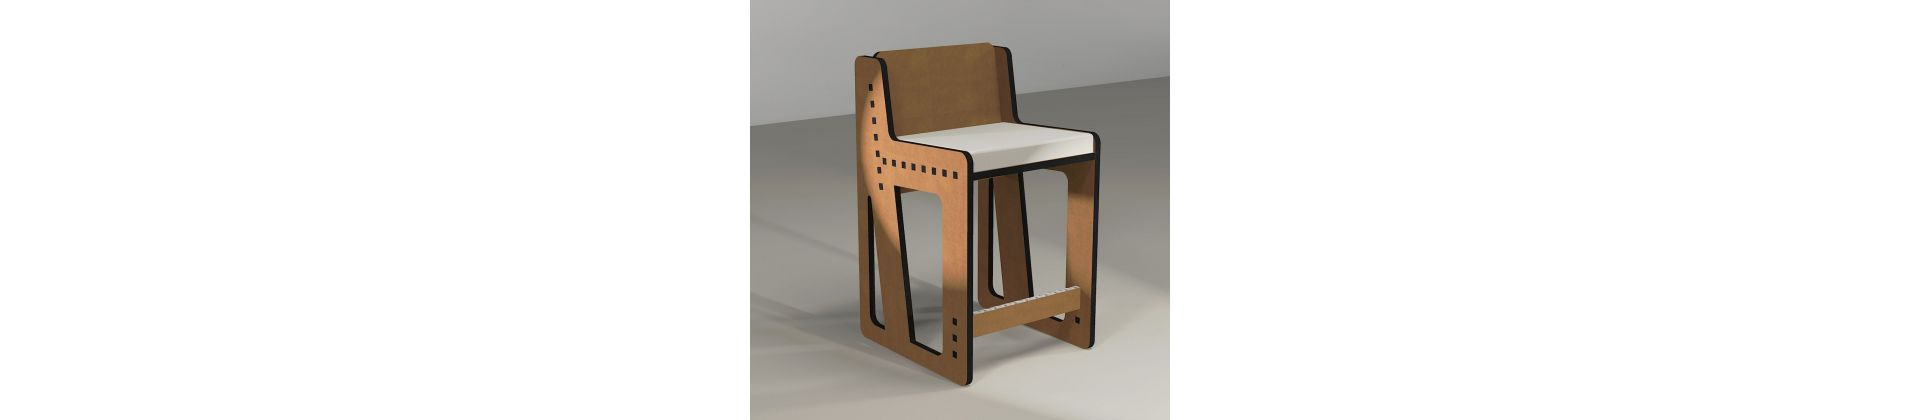 High chair made to measure